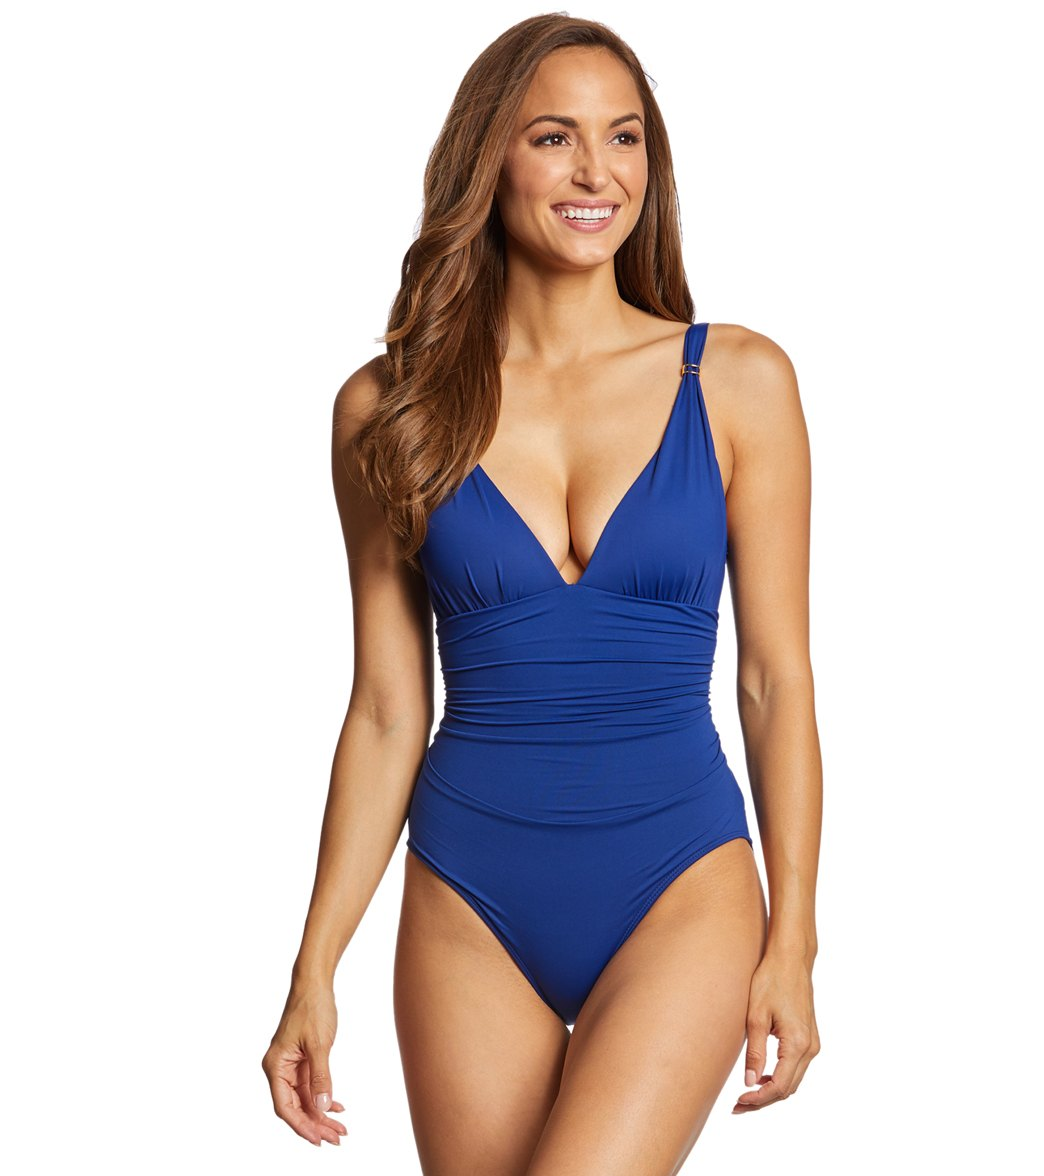 d43c60aa87 Lauren Ralph Lauren Beach Club Solid Slimming Fit Corset One Piece Swimsuit  at SwimOutlet.com - Free Shipping